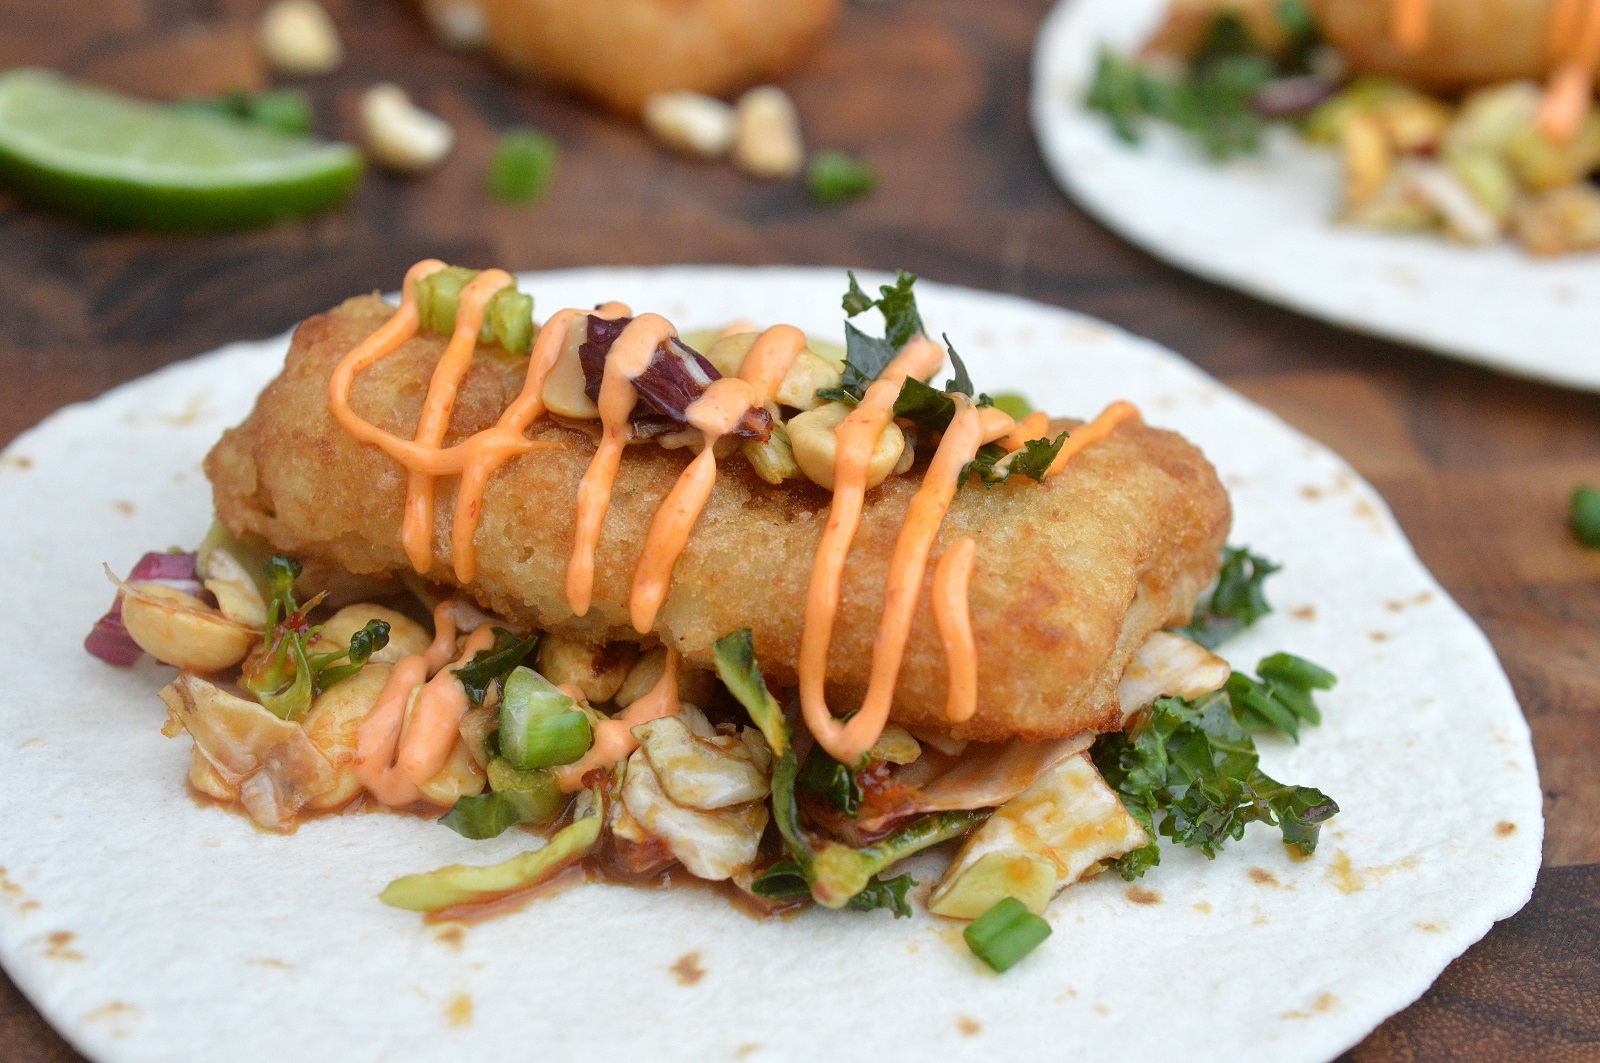 Crispy Fish Tacos with Asian Slaw and Sriracha Mayo